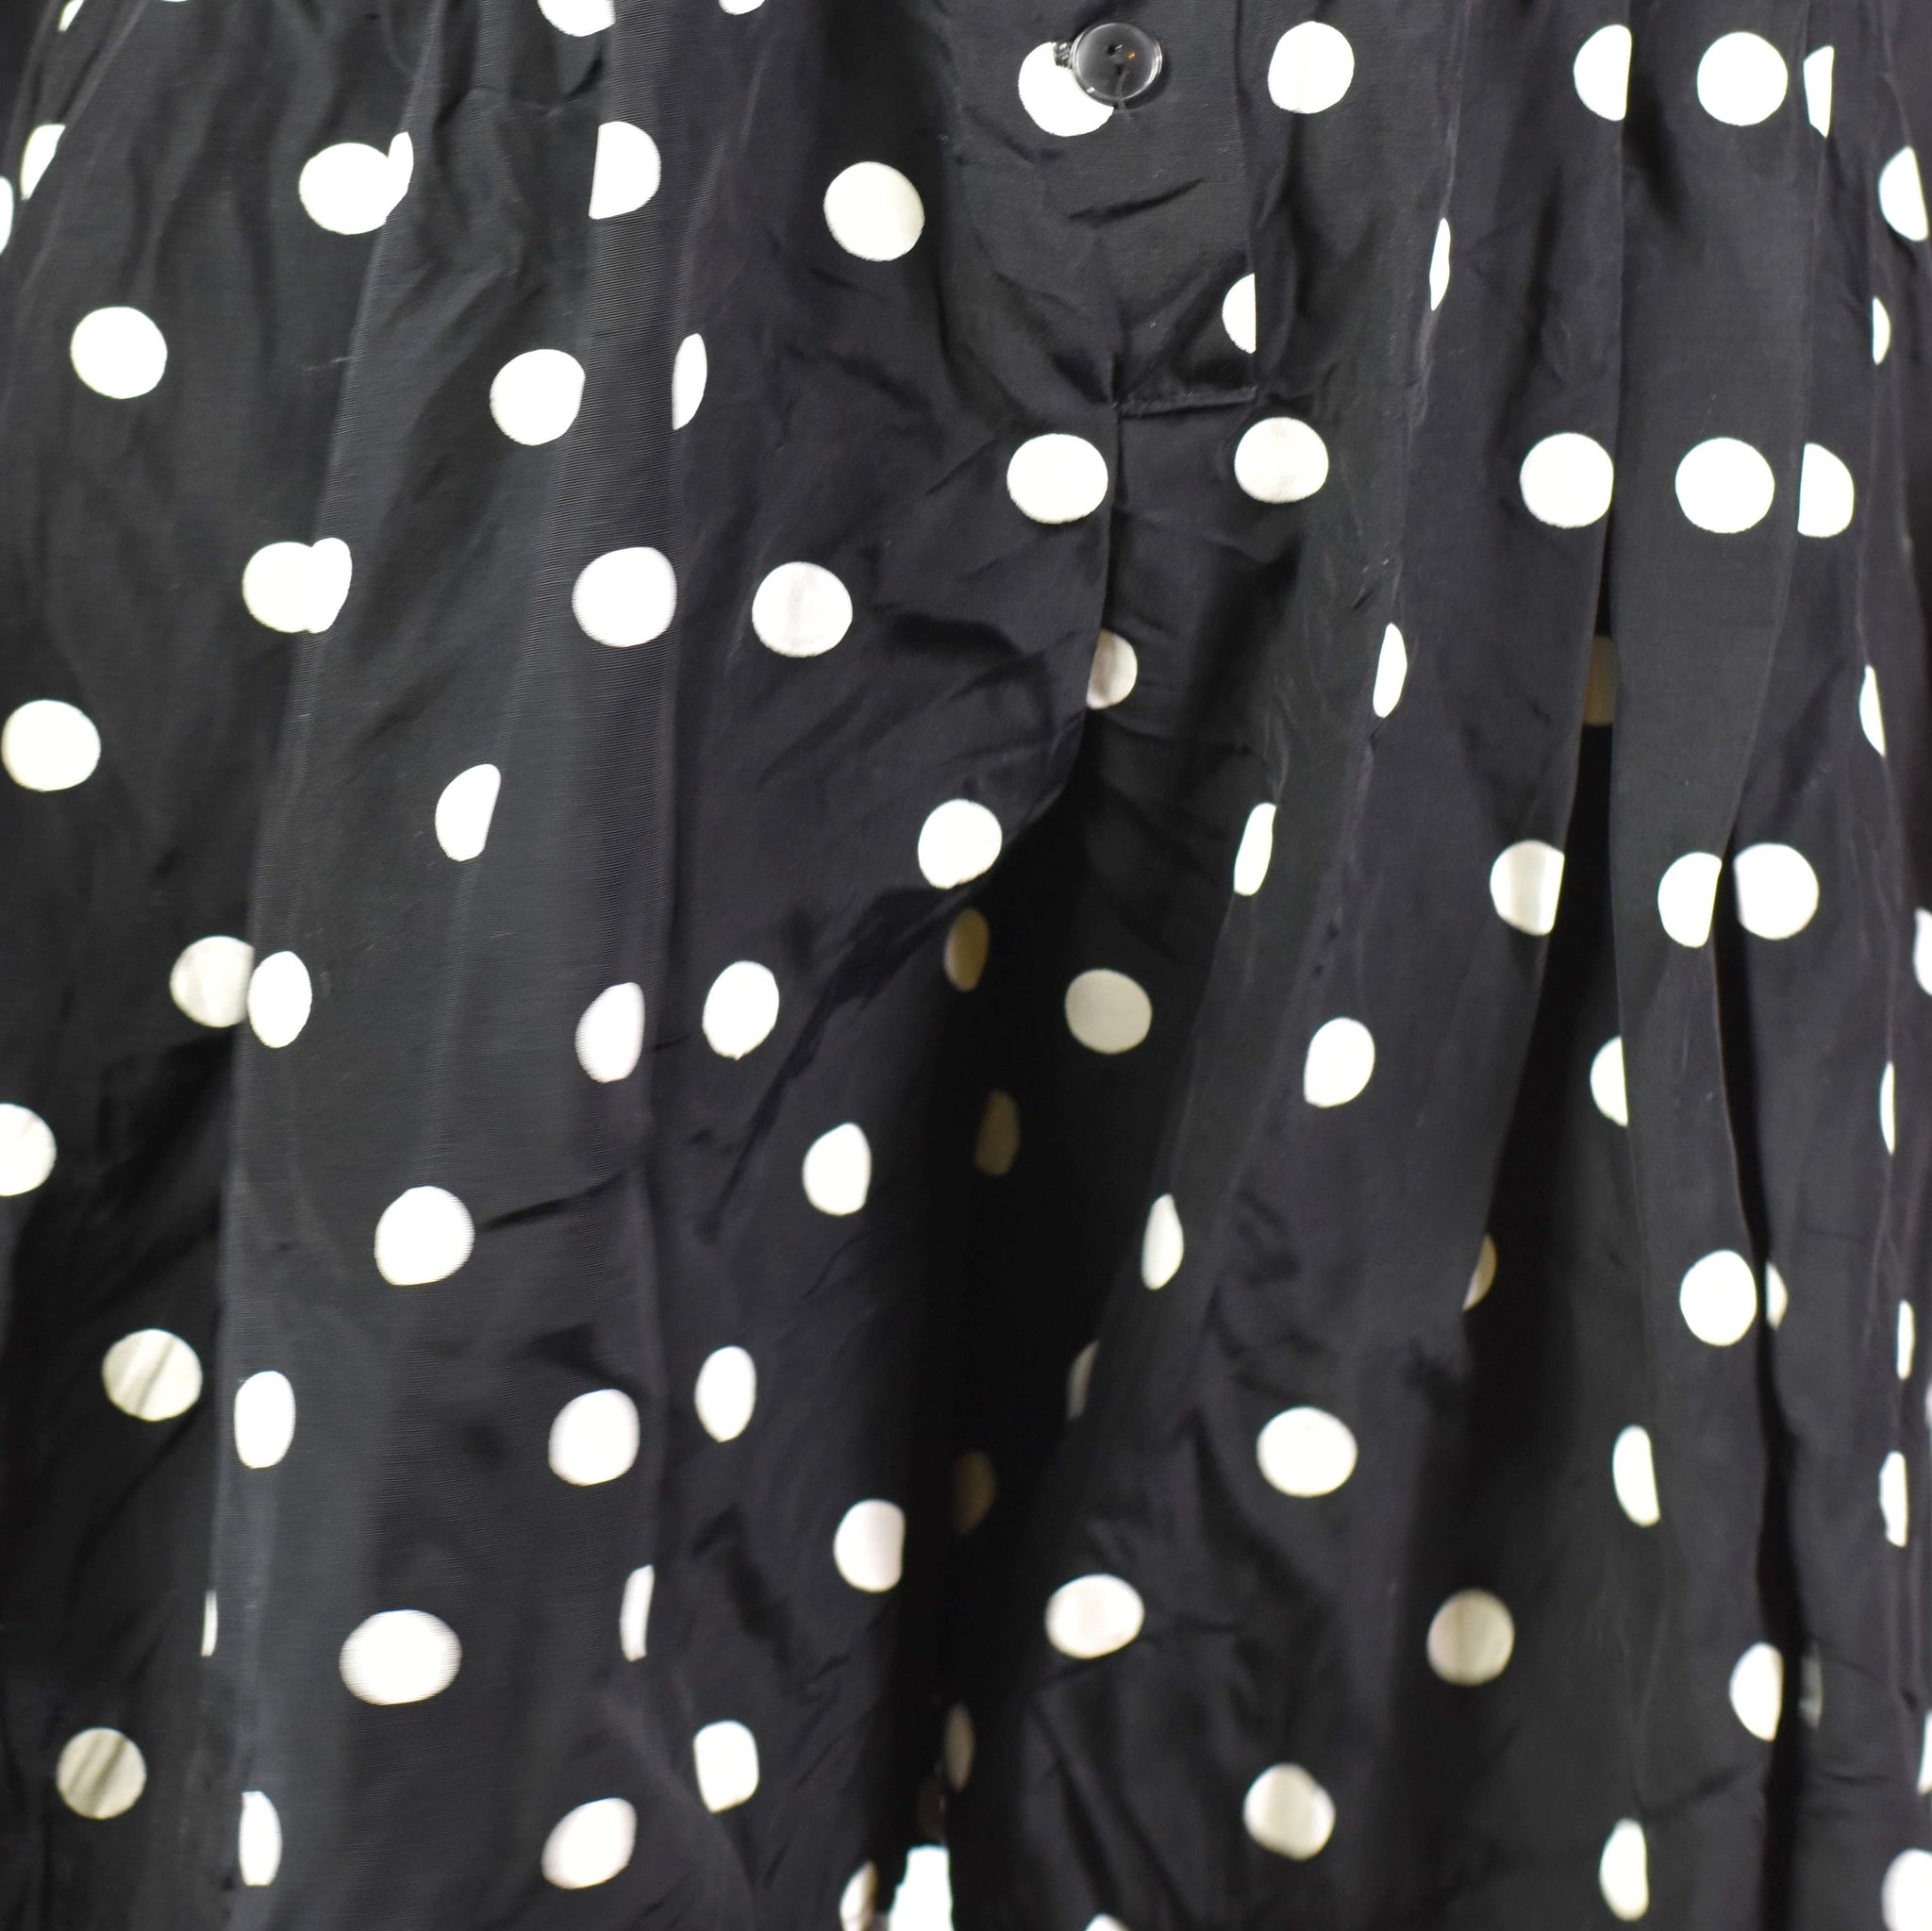 Vintage Polka Dot Romper WD2 by Diamond Size Medium